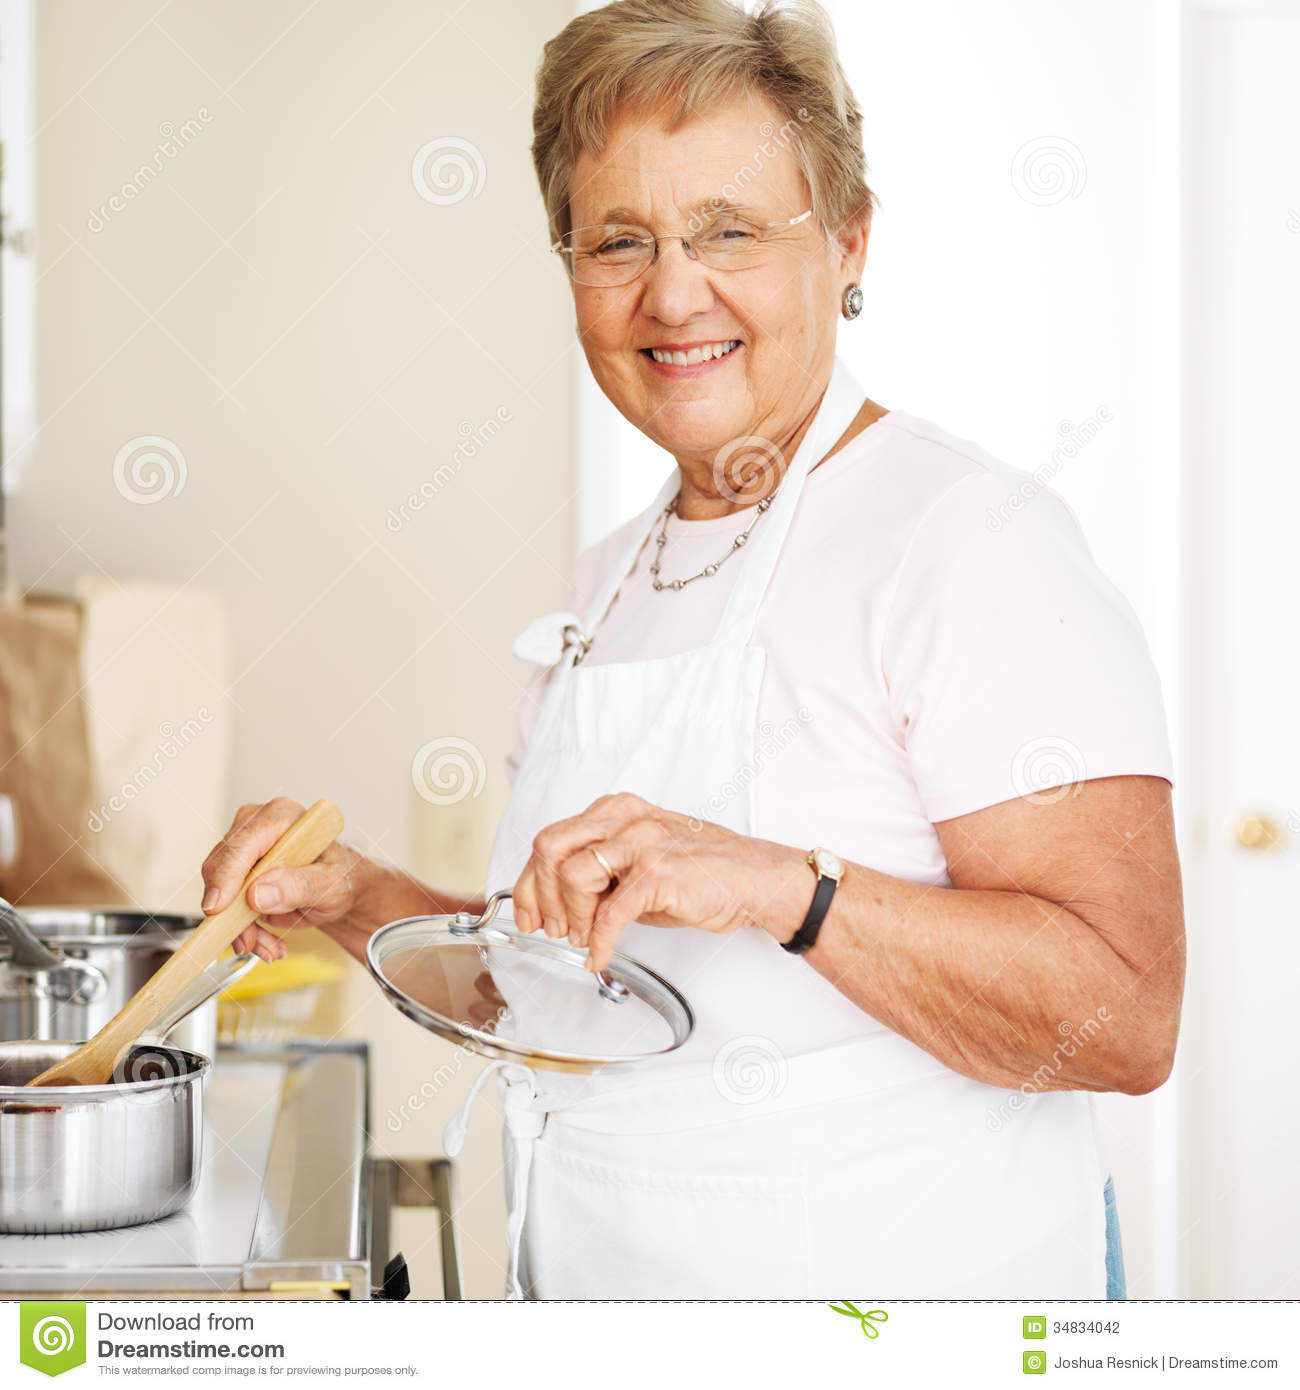 Happy Grandmother Cooking In Kitchen Stock Photo - Image of glasses ...